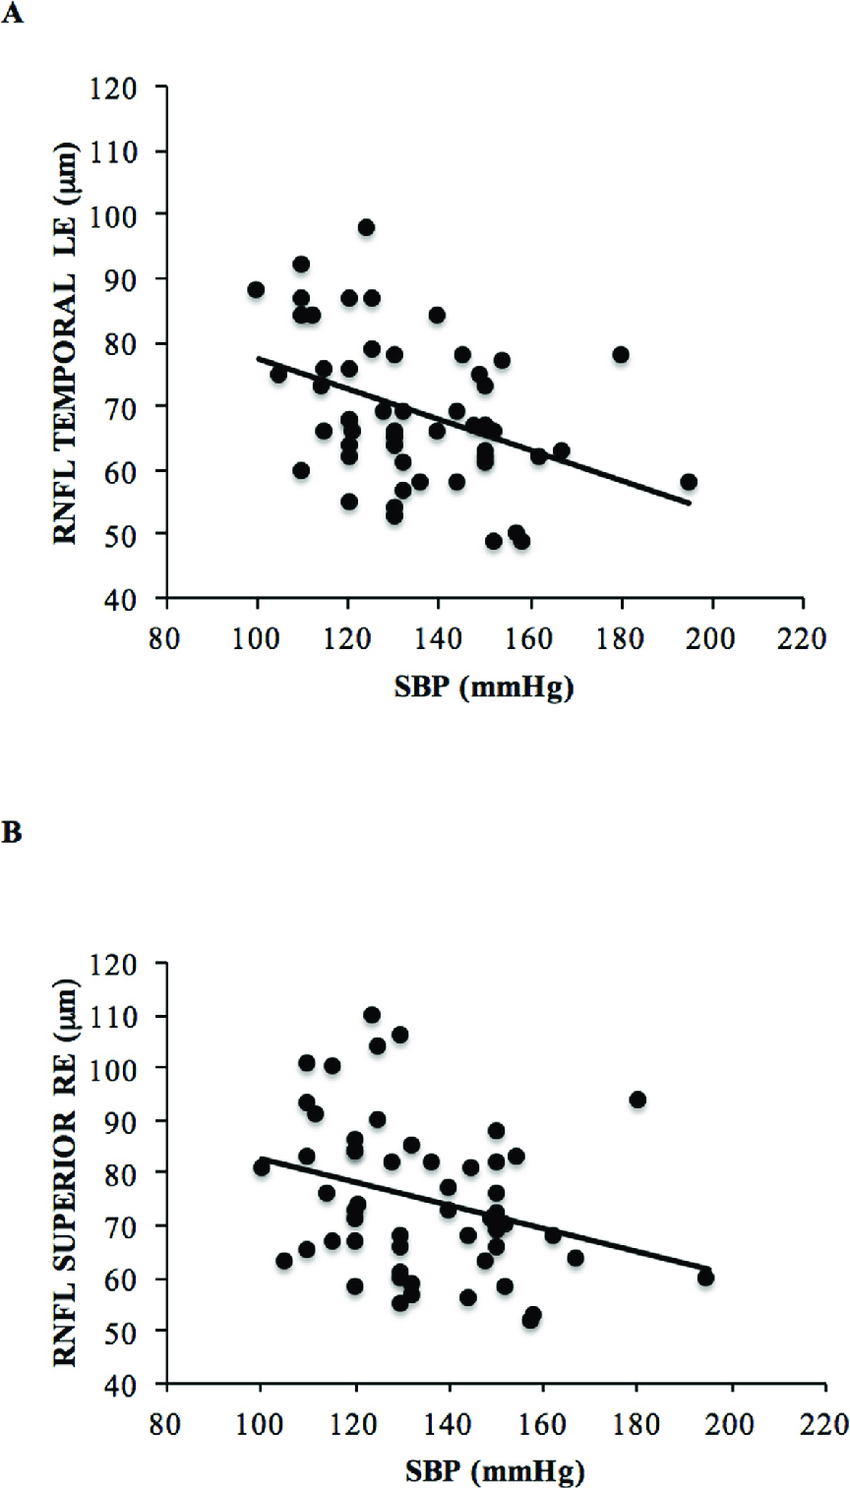 hight resolution of relationship between systolic blood pressure sbp and retinal nerve fiber layer rnfl